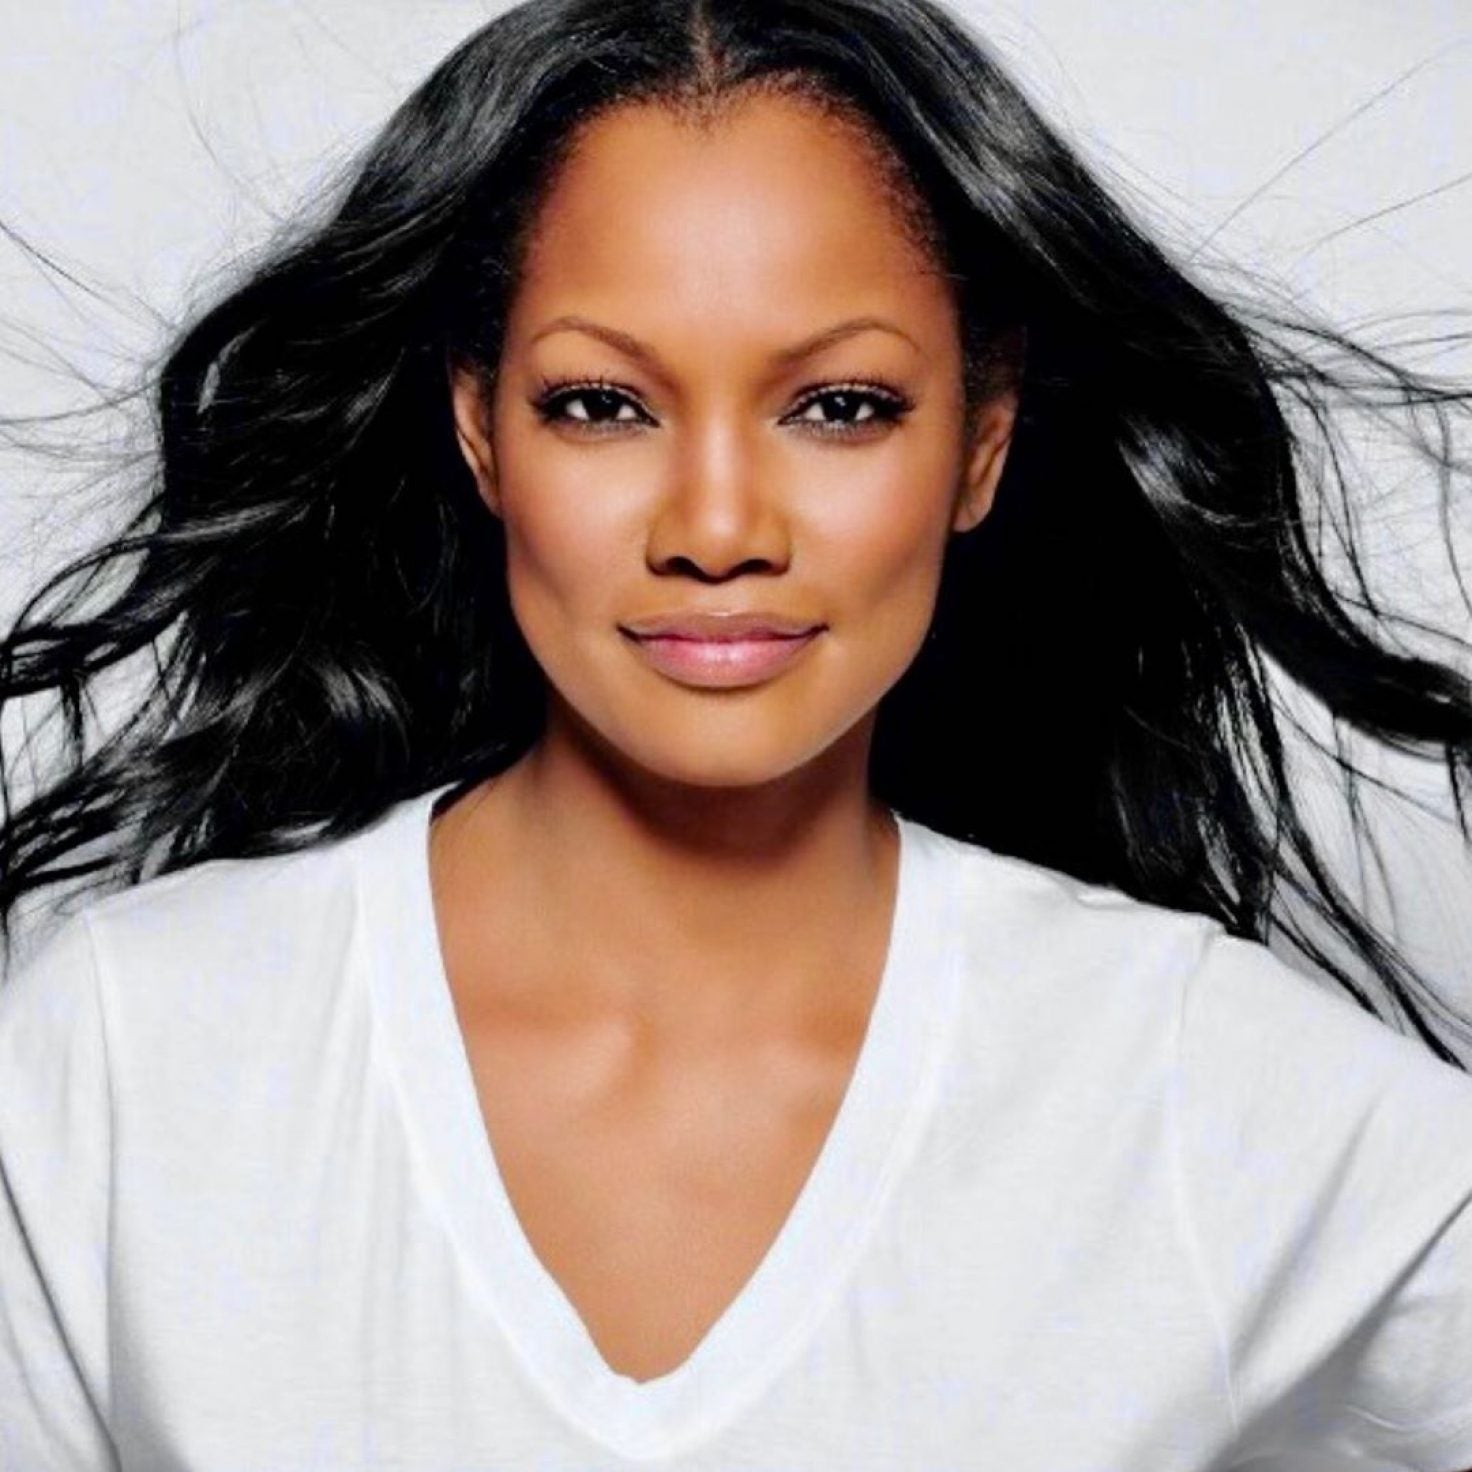 Garcelle Beauvais Recalls How A Stranger Once Mistook Her For Her Biracial Sons' Nanny